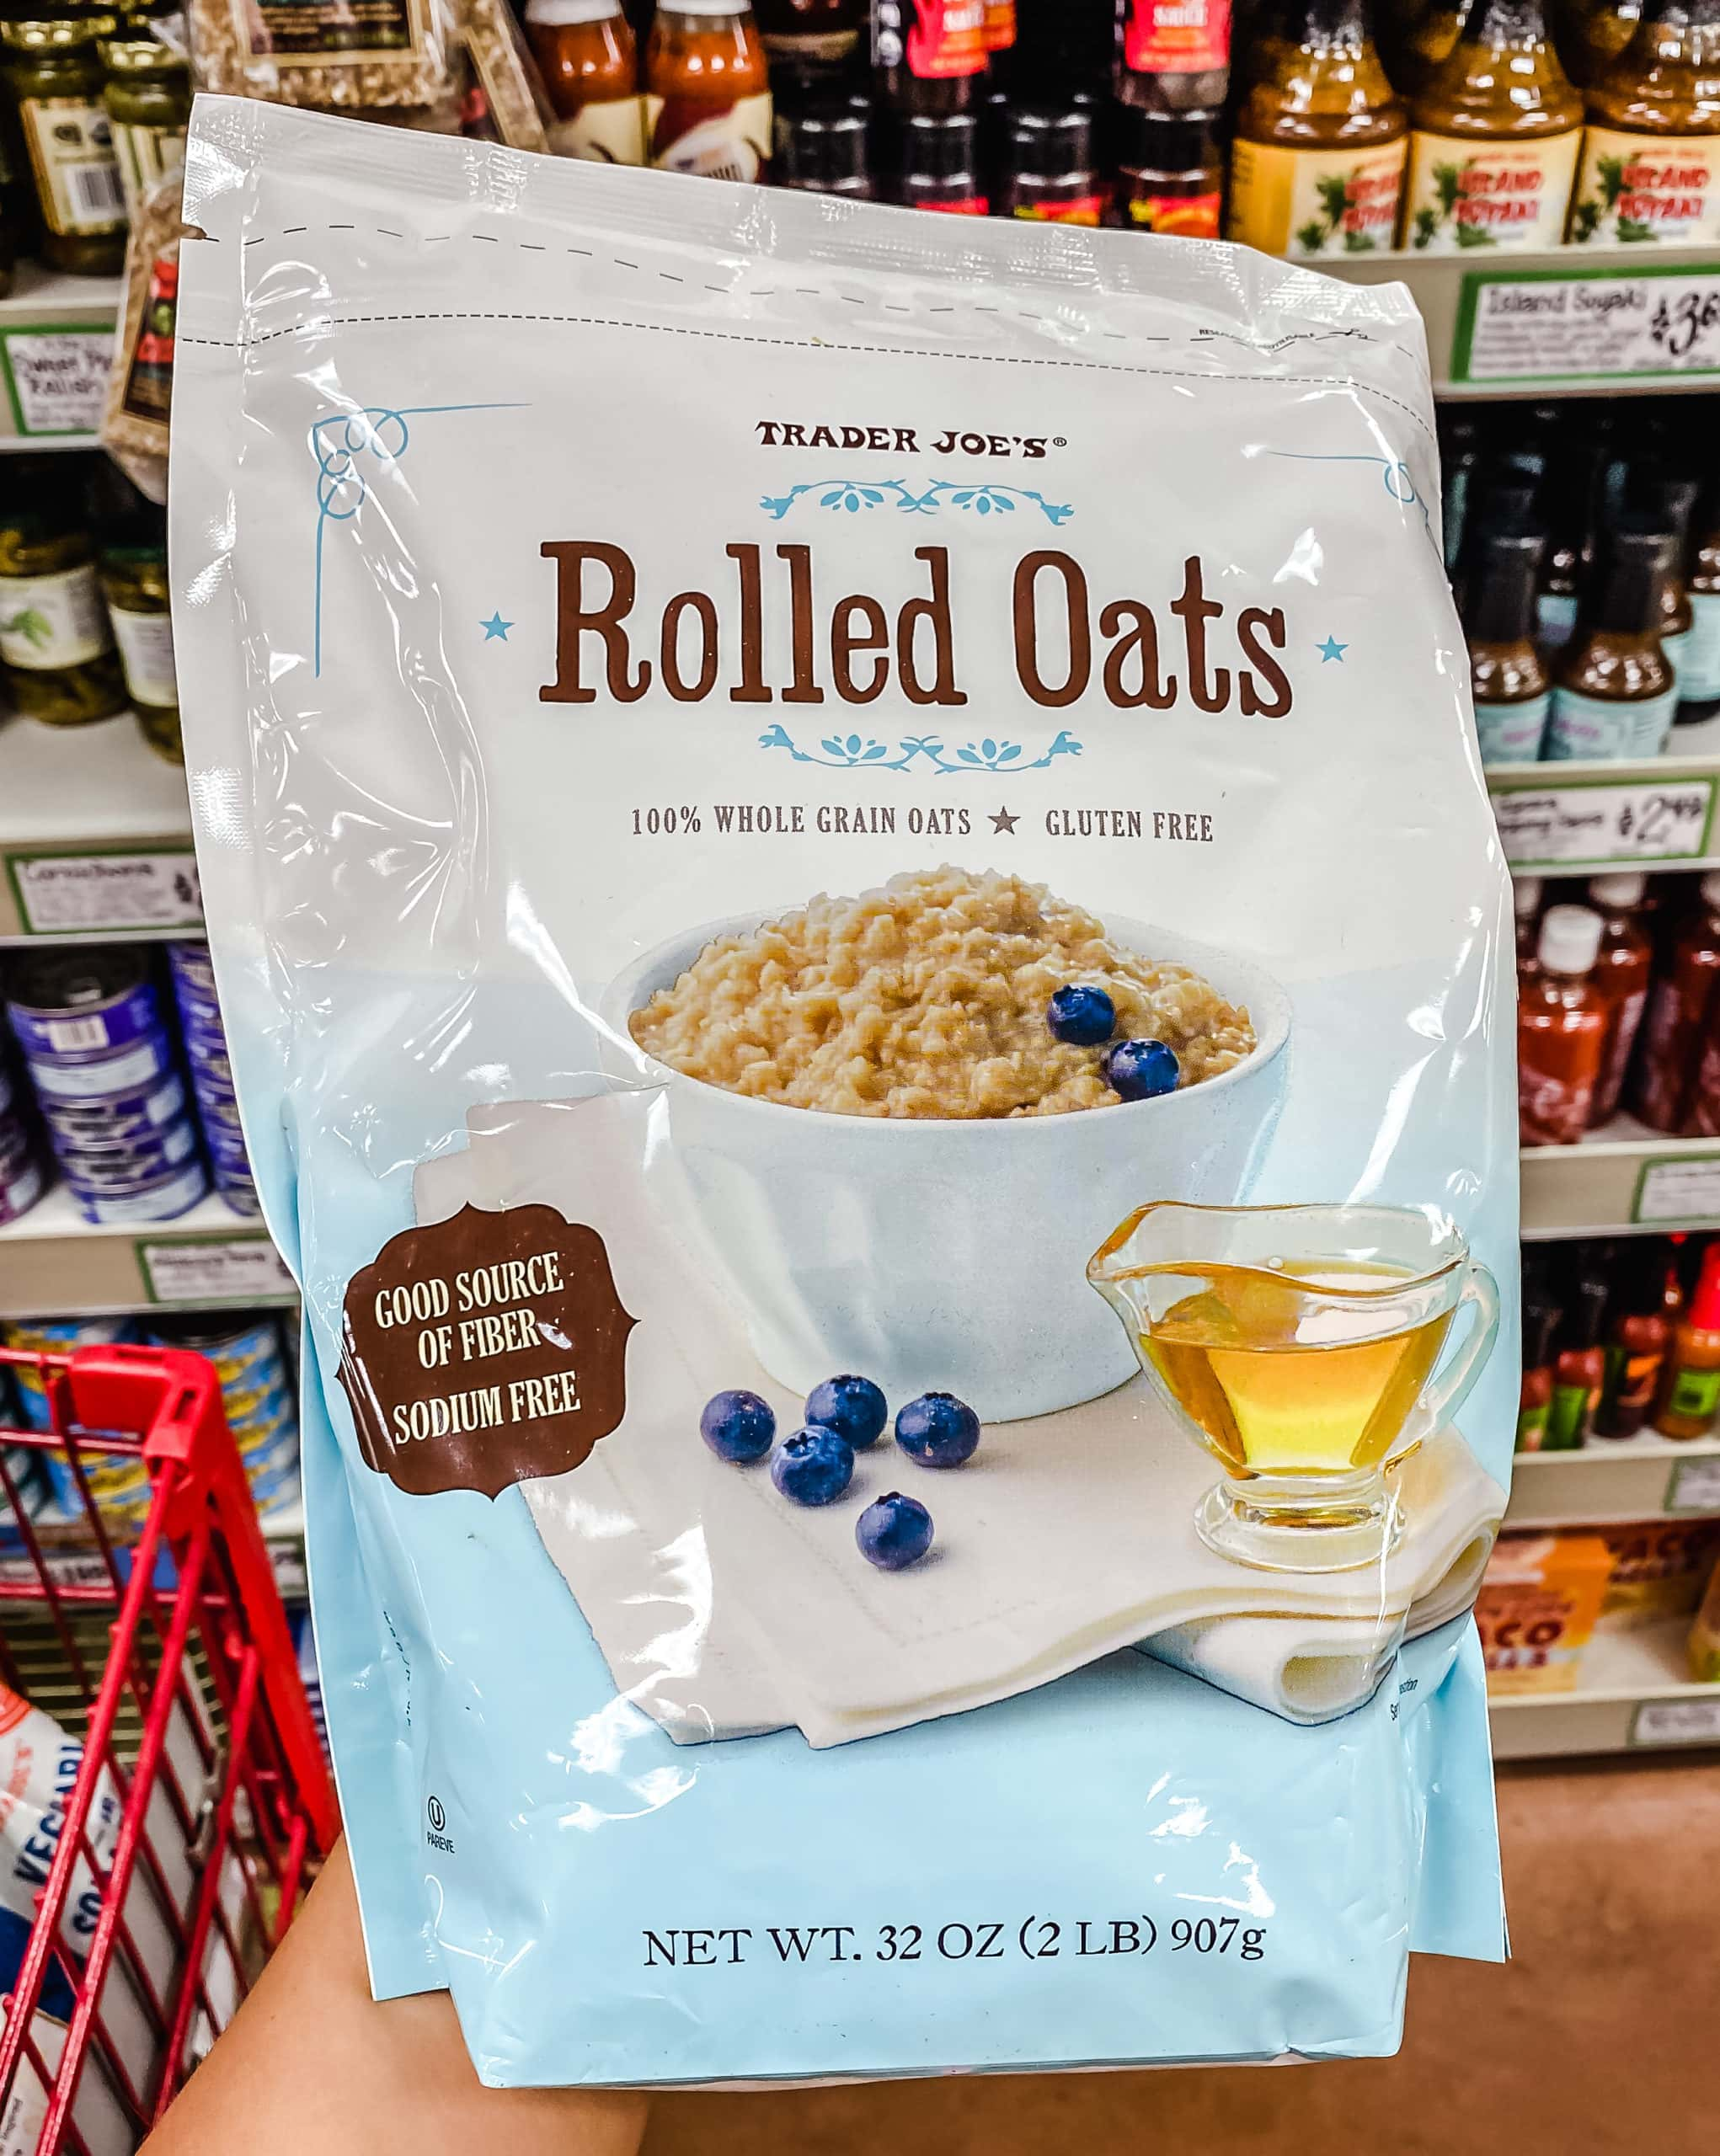 Gluten Free Rolled Oats from Trader Joe's. The best foods to buy from Trader Joe's.